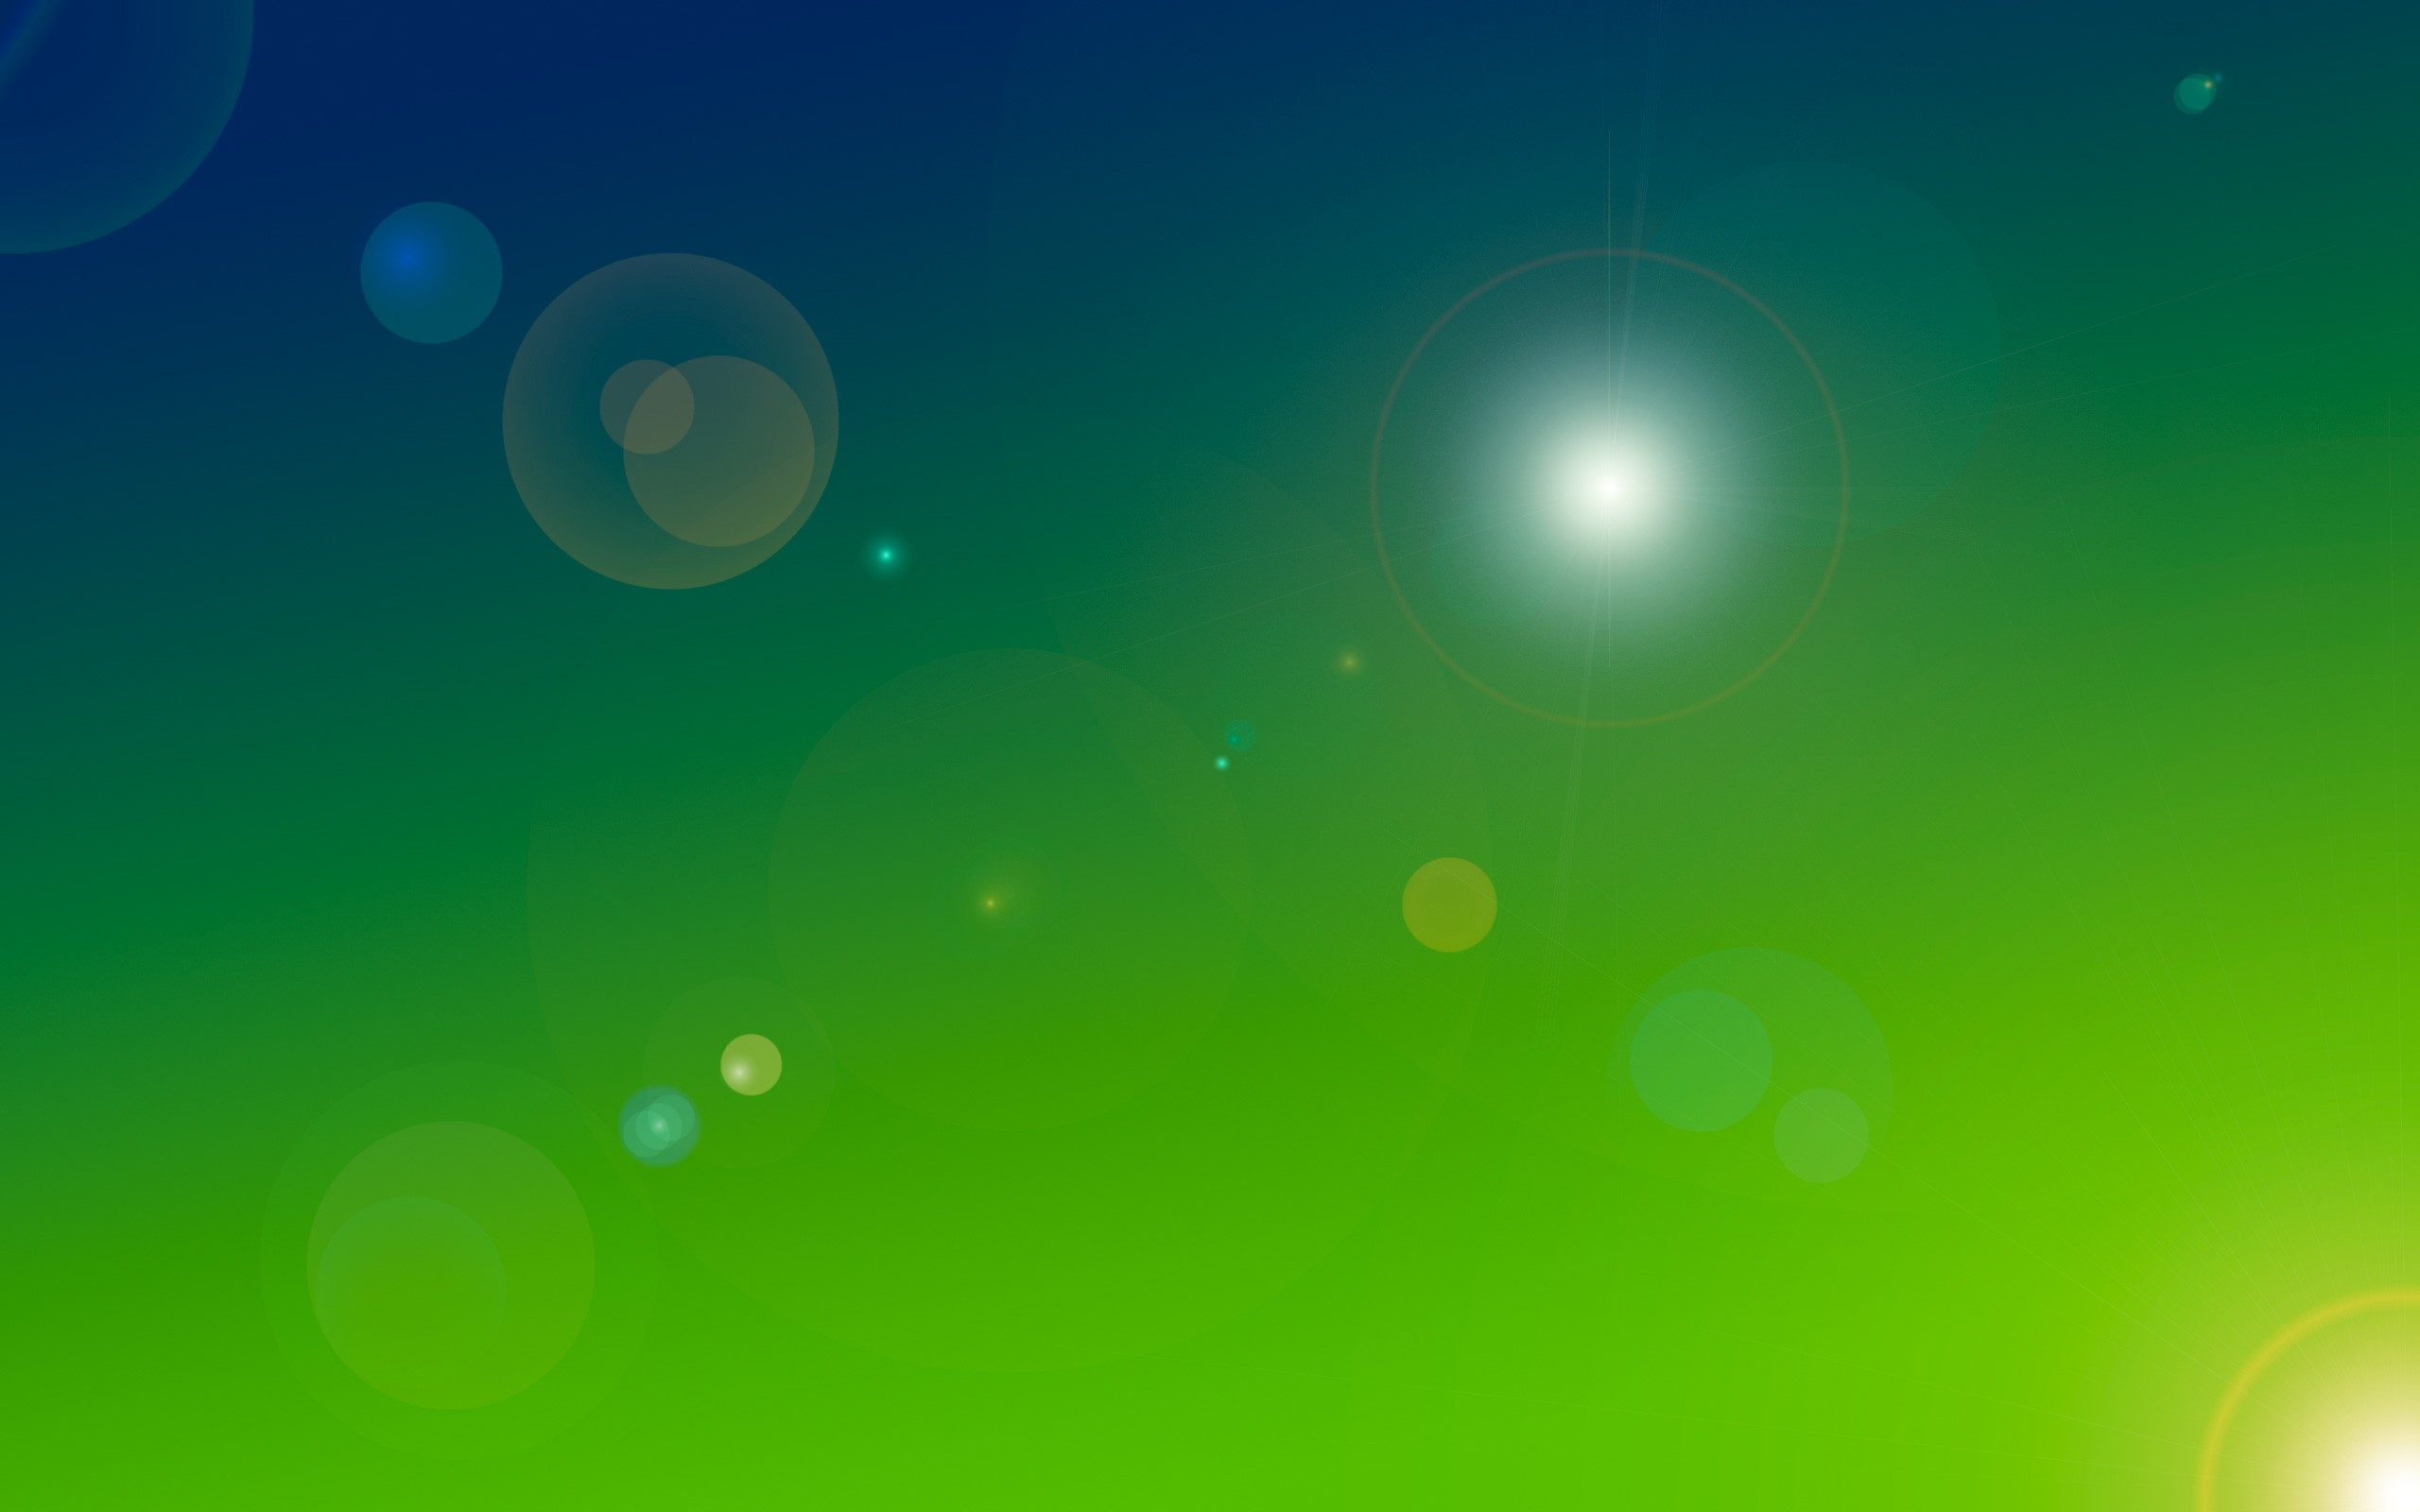 Blue And Green Background Wallpaper 9839 on Down Load Mozilla Firefox